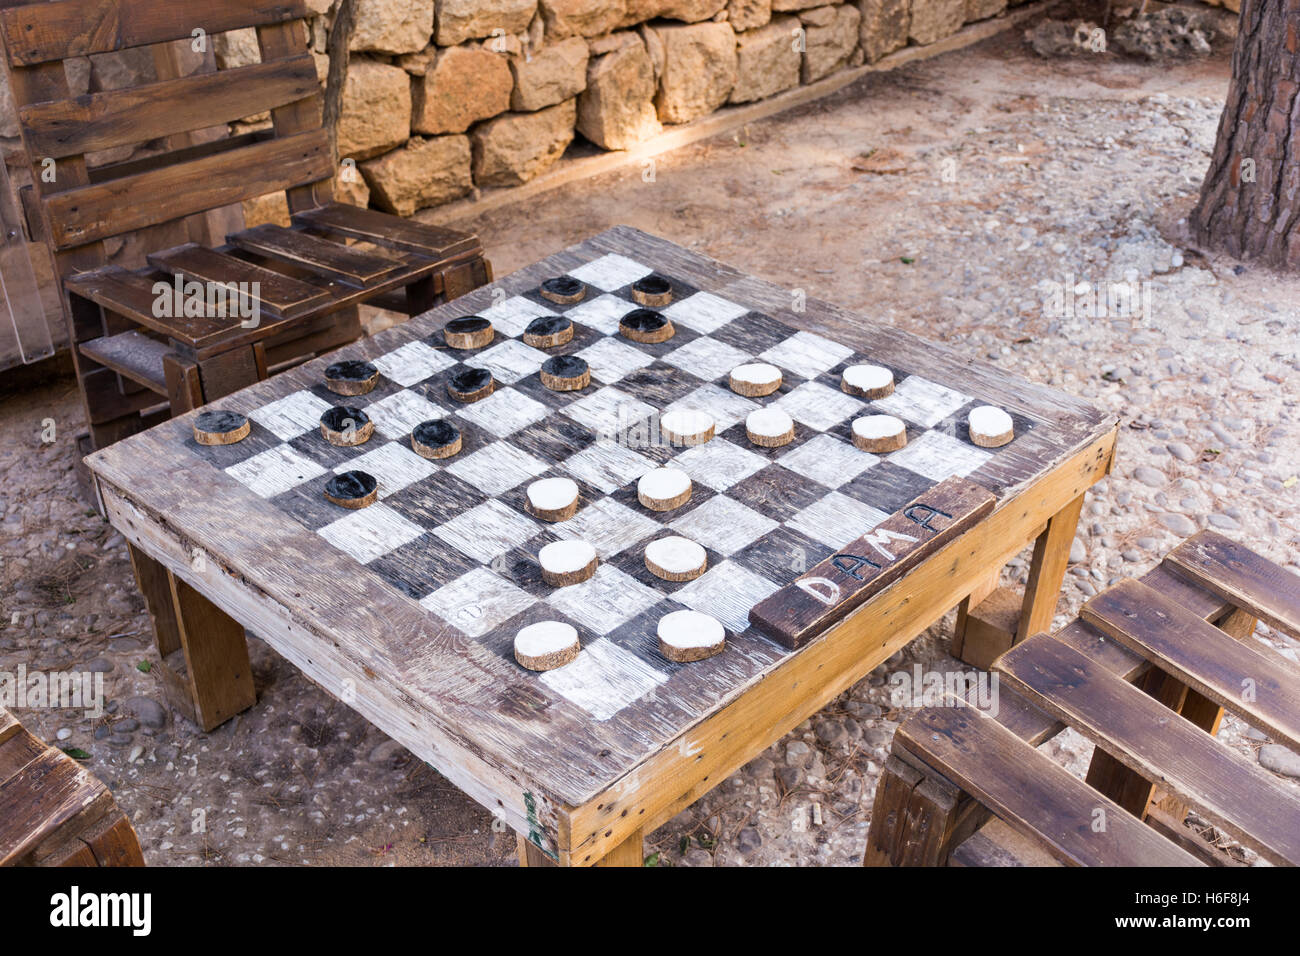 The Board Games Checkers. All Of Wood, By Recycling Used Materials,  Ecological In The Garden, Can Be Used As A Table.